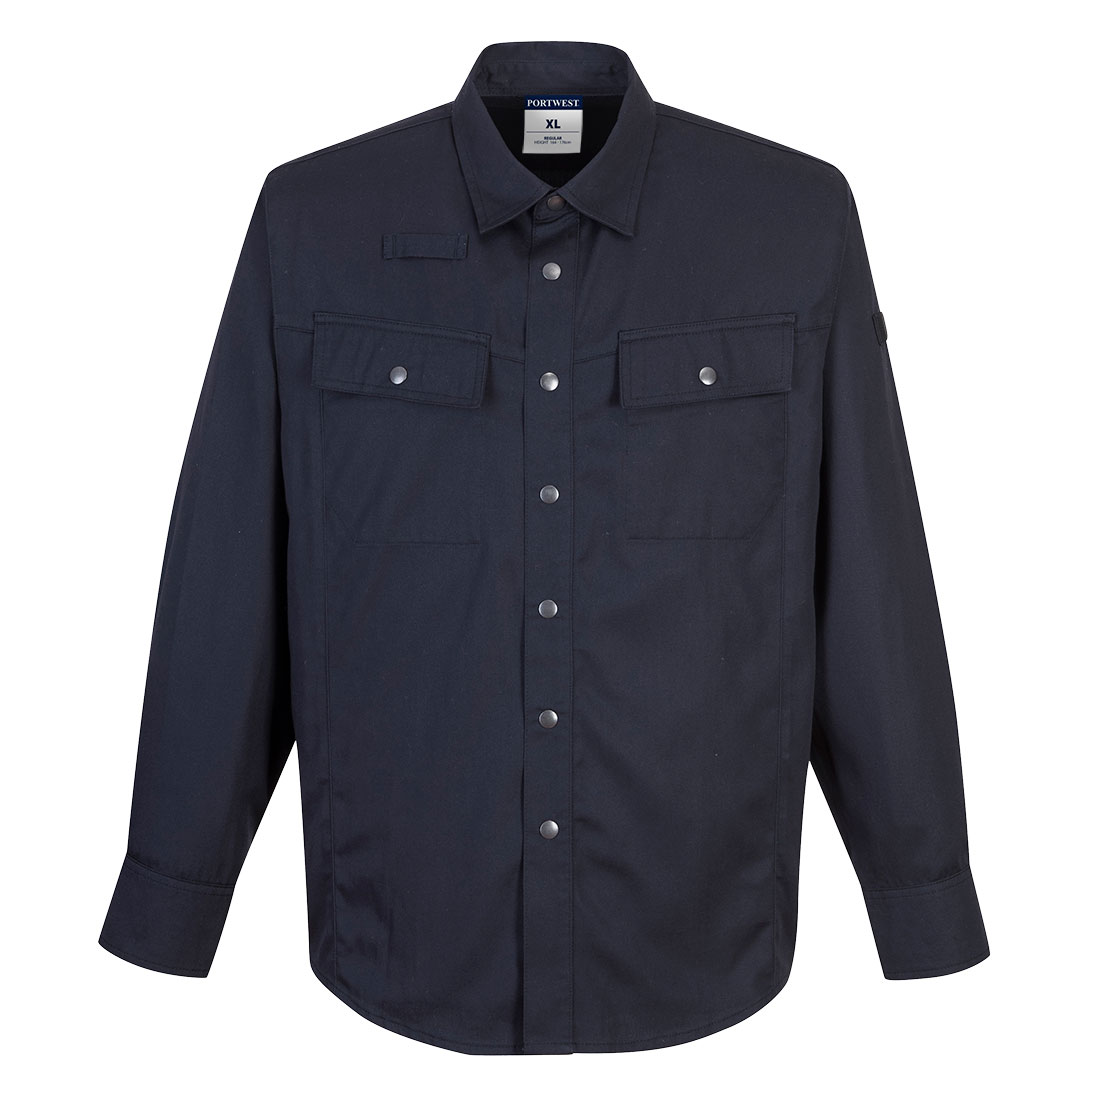 Workwear, T-Shirts, Polos and Shirts